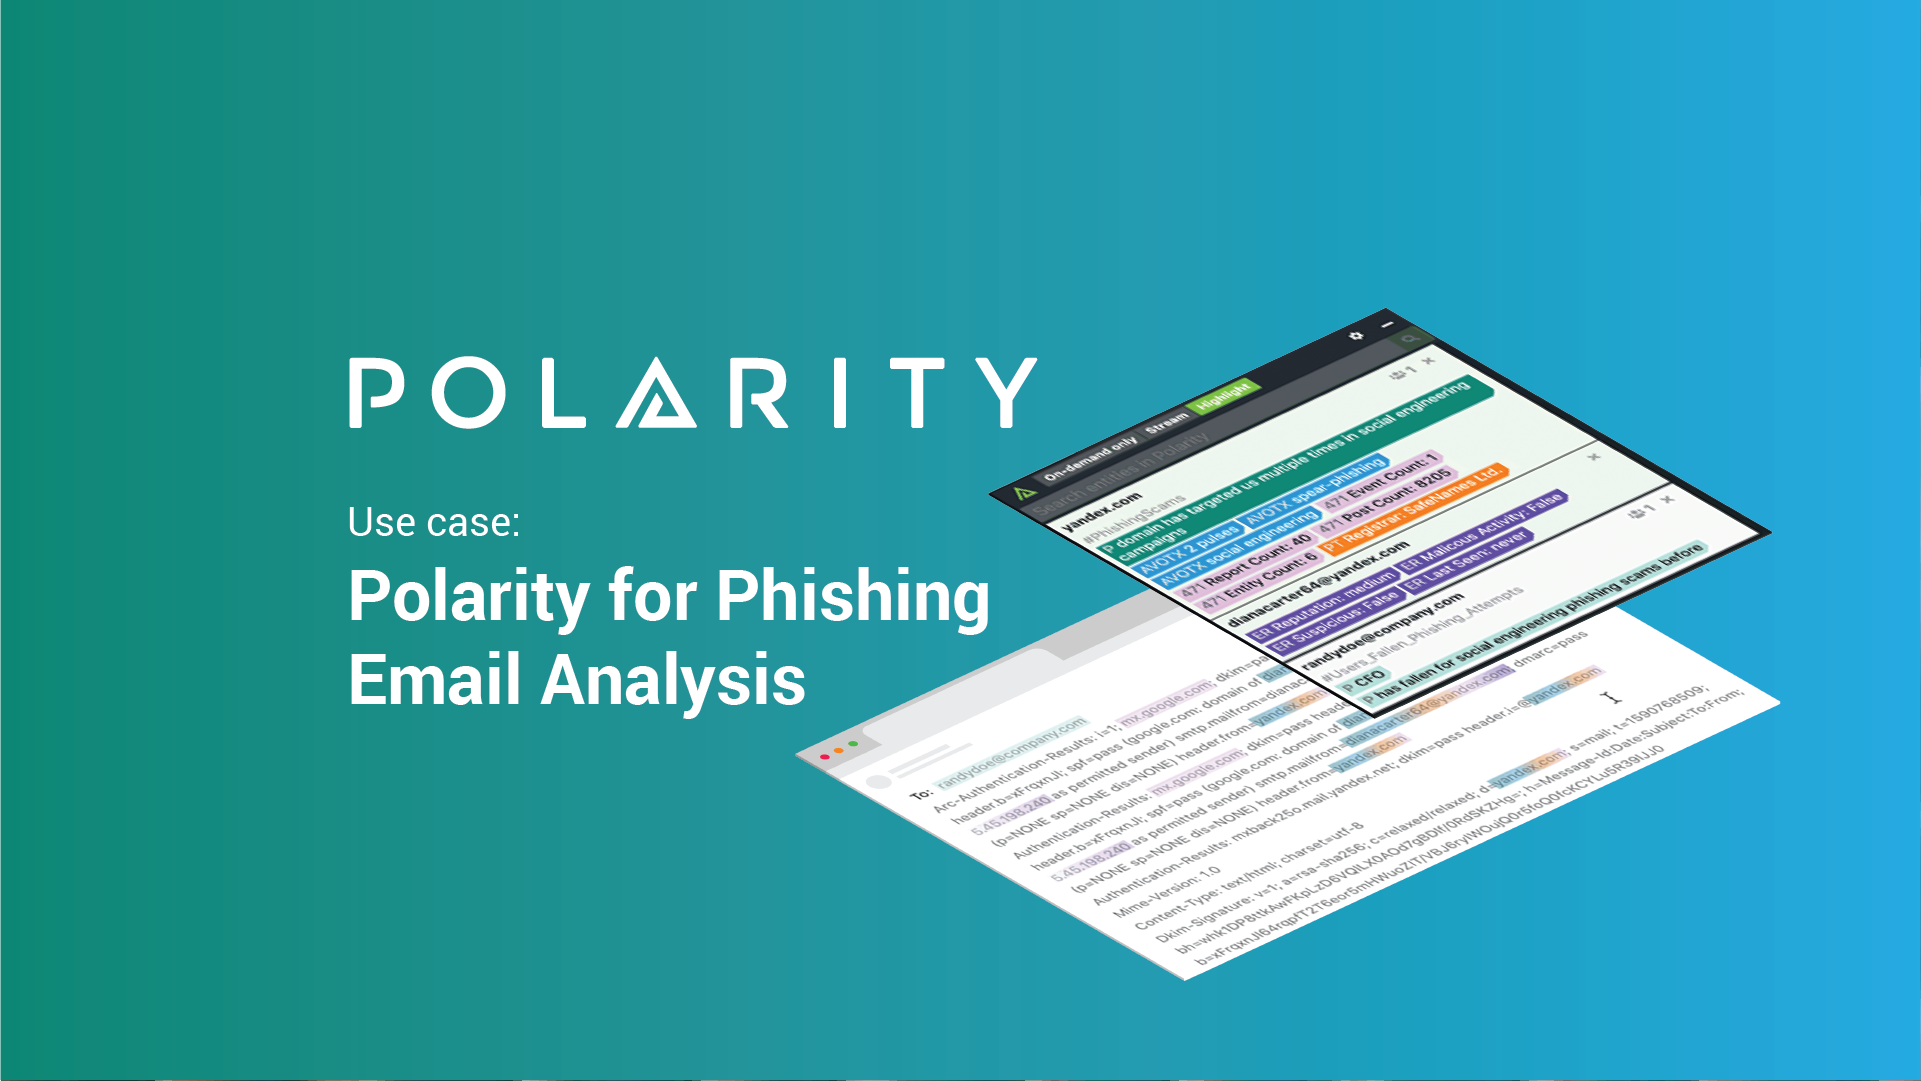 Polarity for Phishing Email Analysis cover image